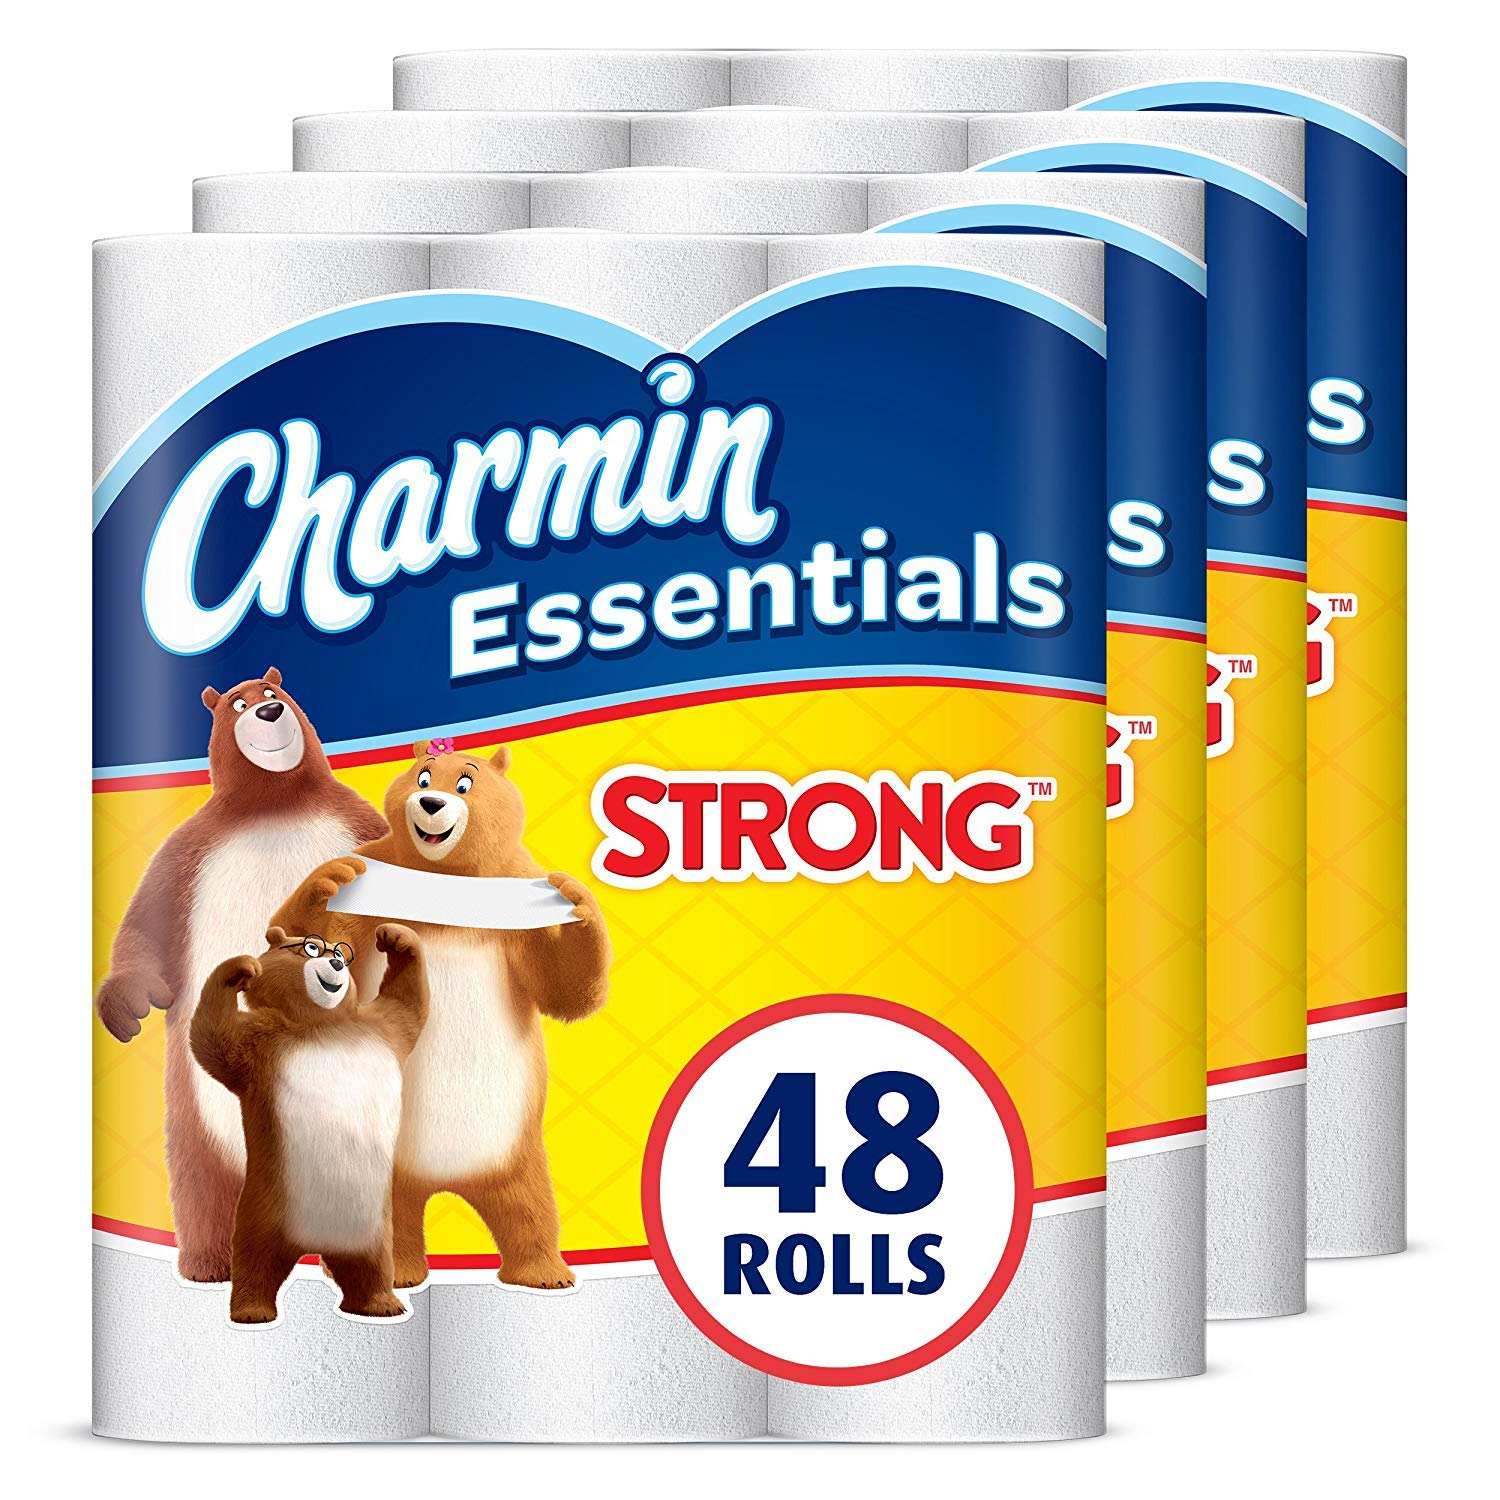 Charmin Essentials Strong Toilet Paper, 1-Ply, 48 Giant Rolls (Equal to 108 Regular Rolls) by Charmin